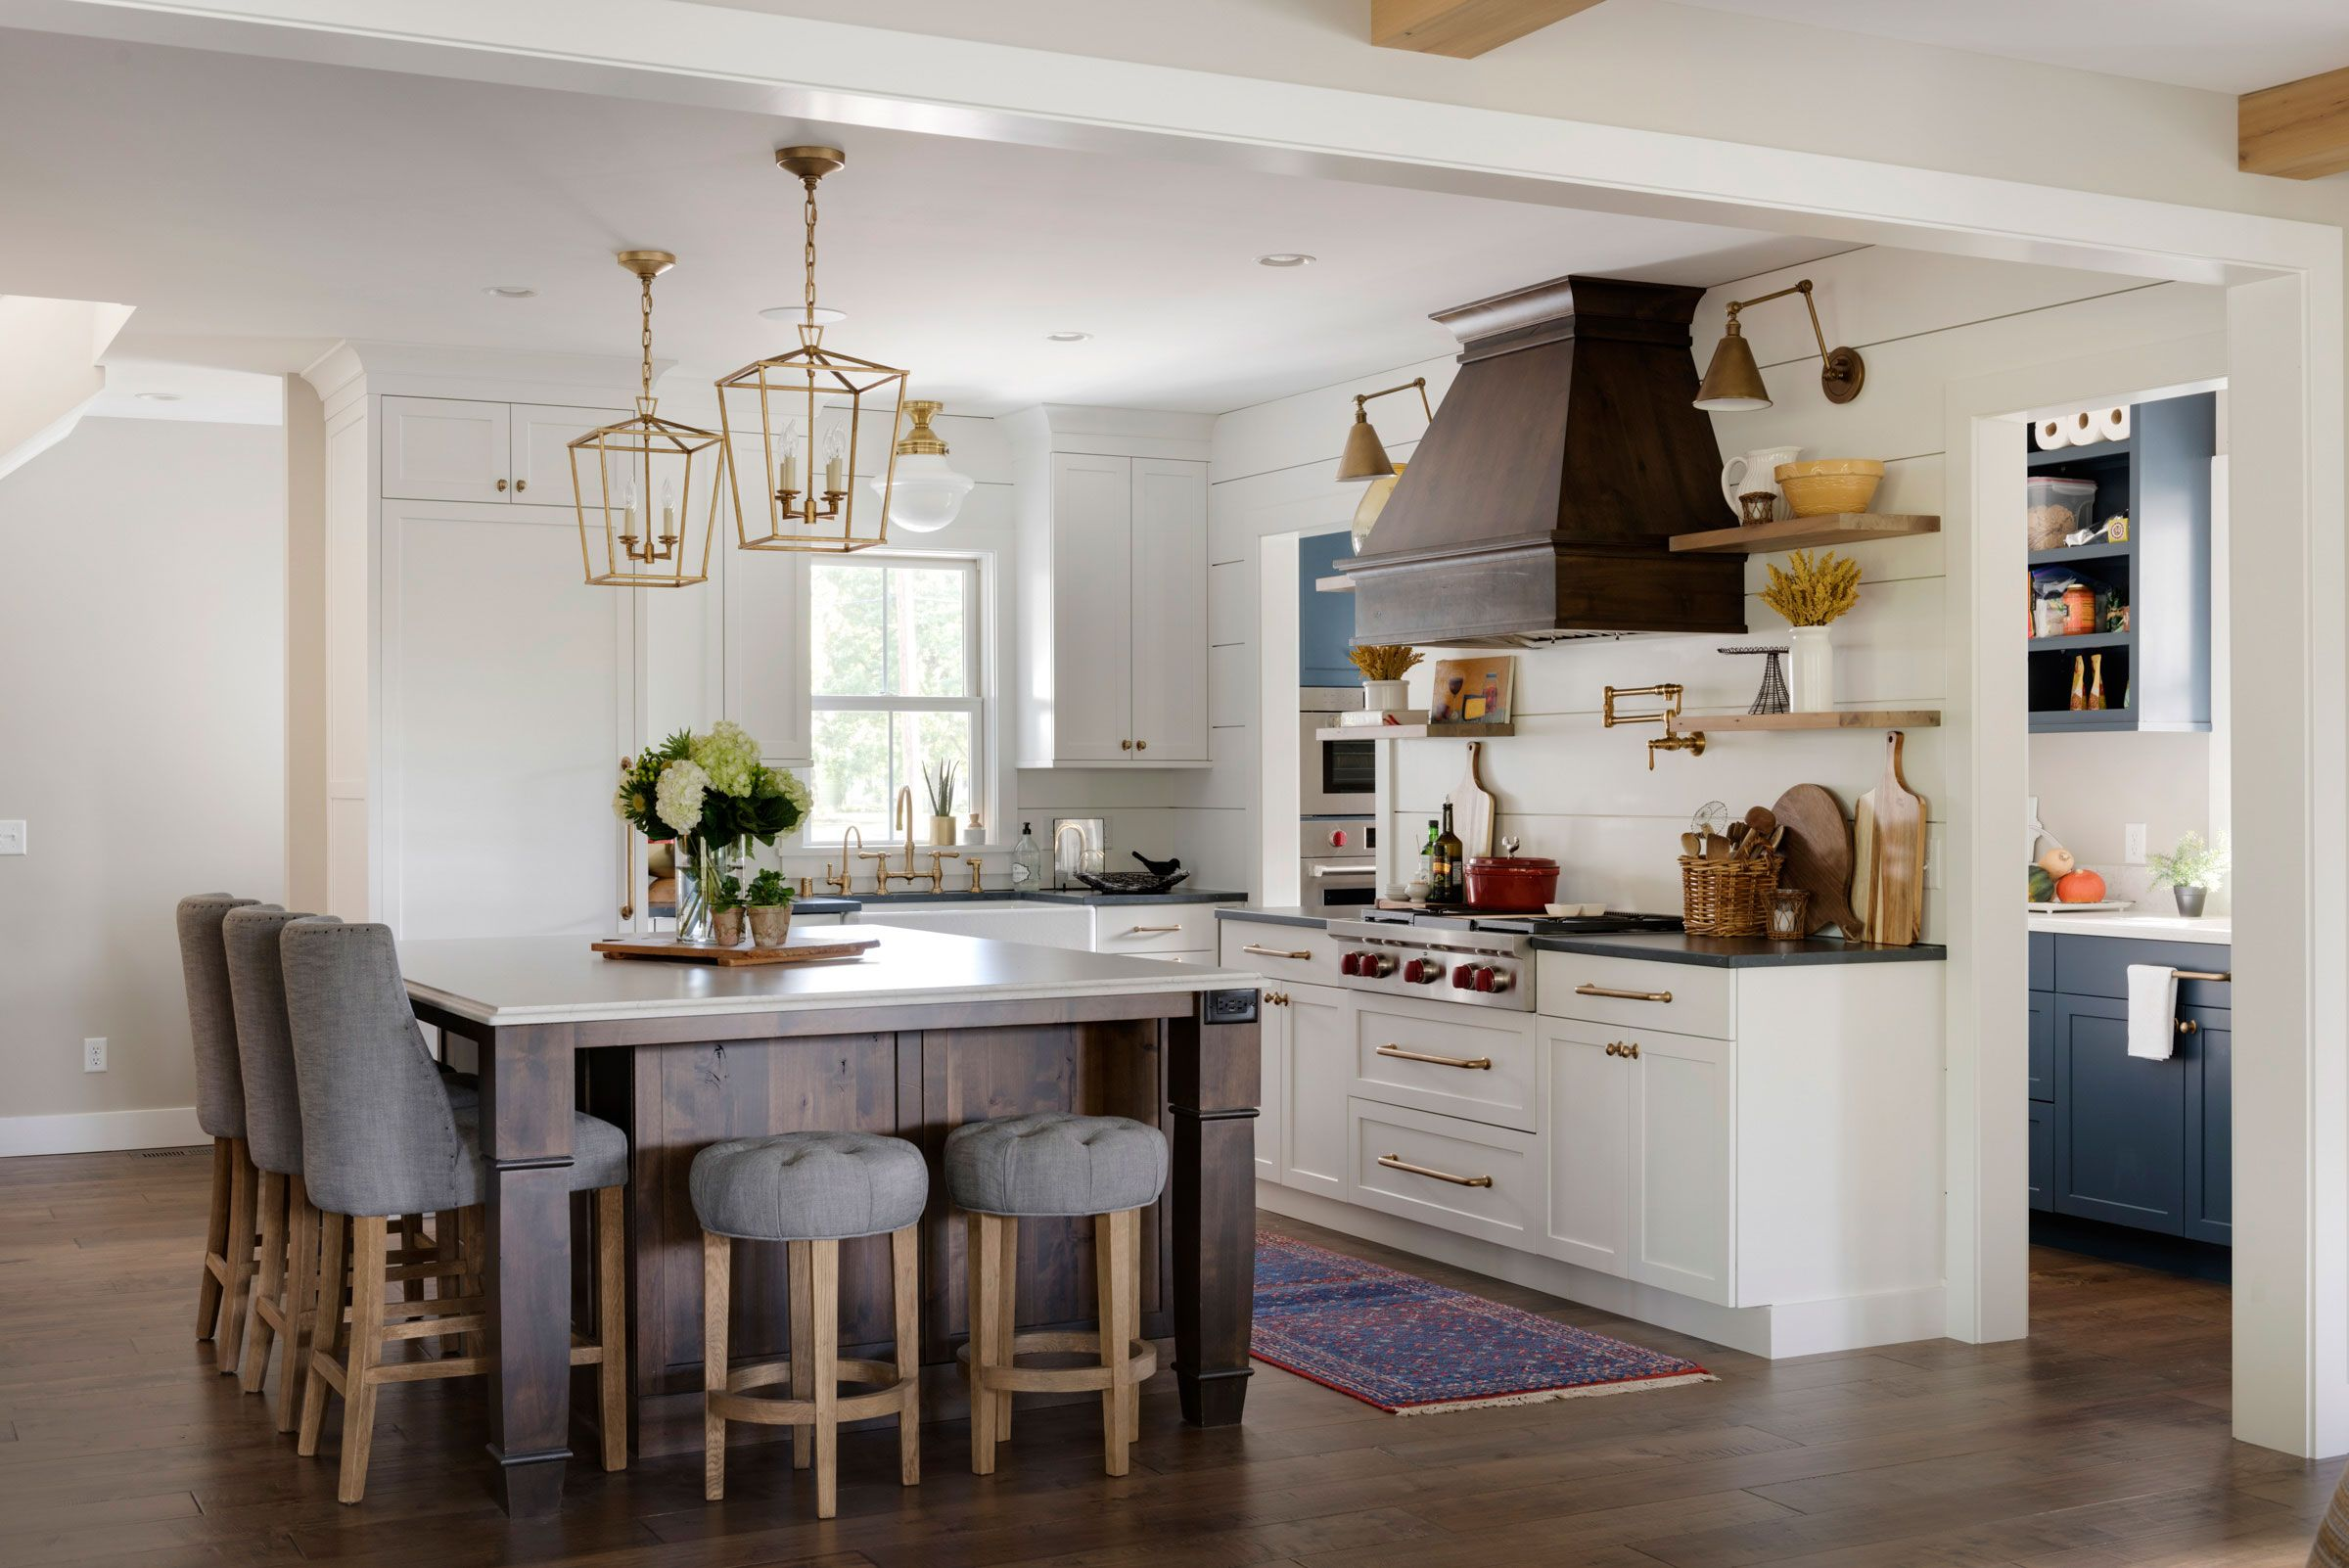 Pictures Of Transitional Style Kitchens